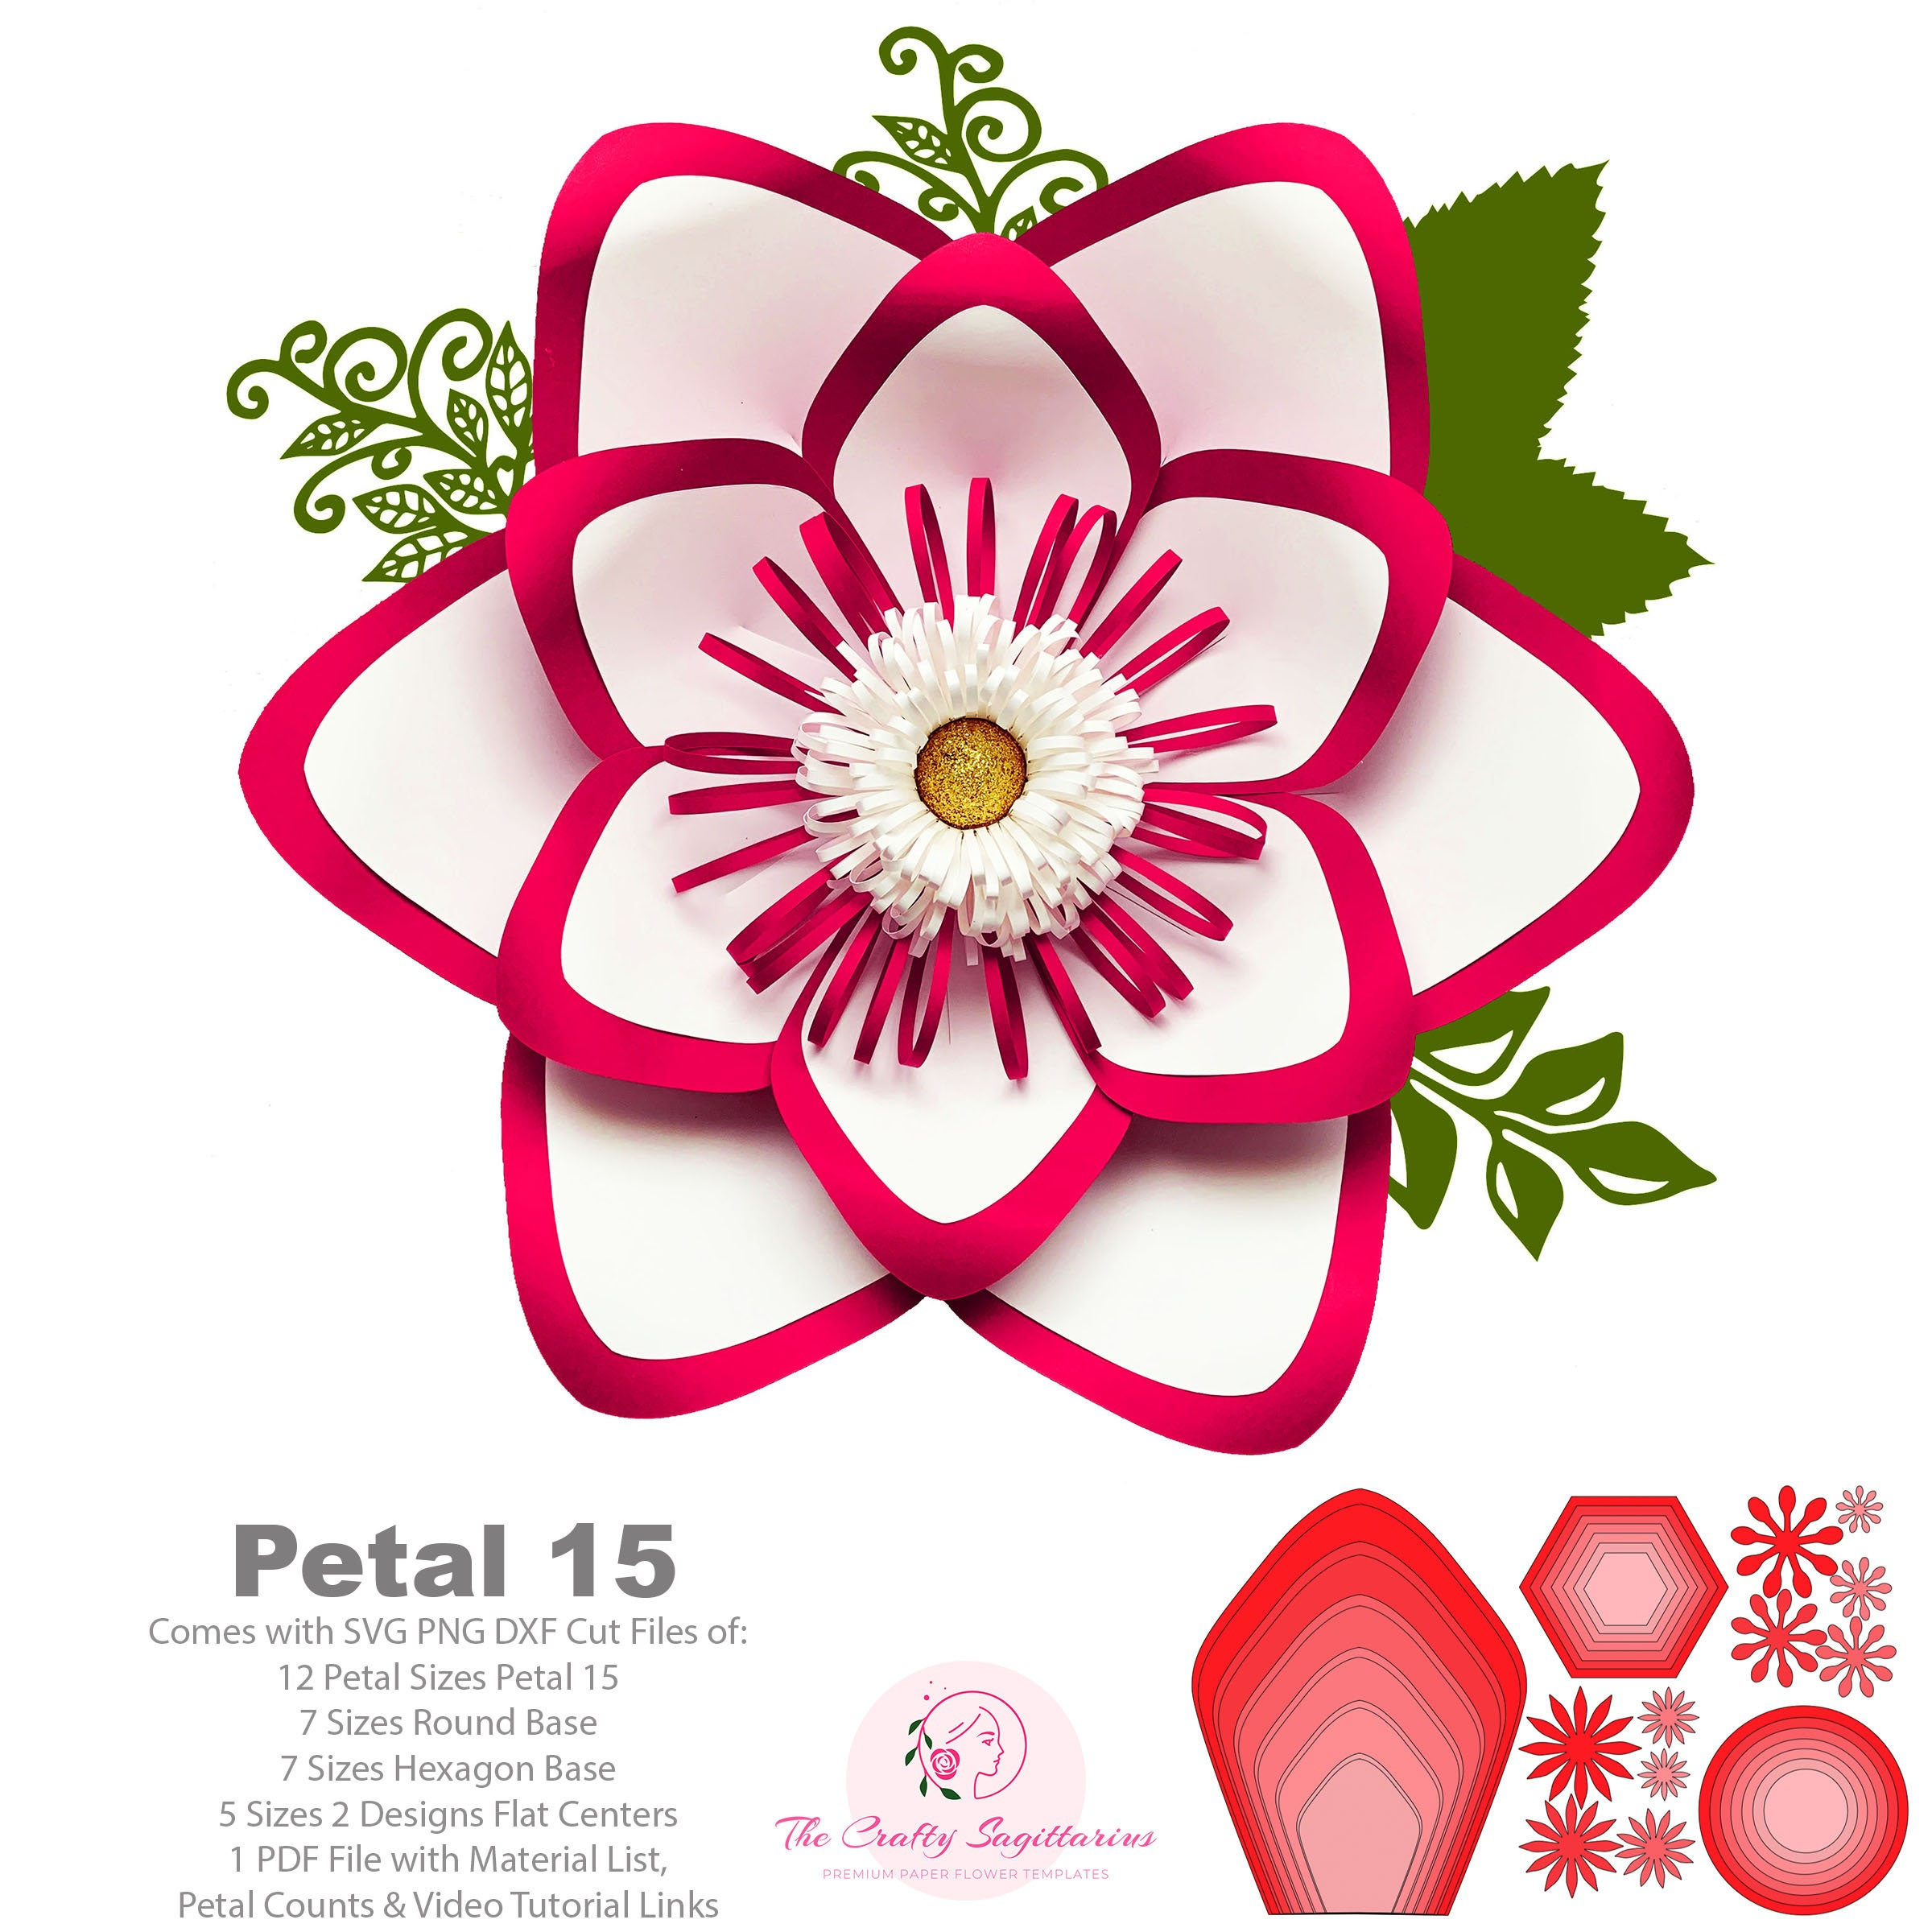 Svg Png Dxf Petal 15 Paper Flowers Template Base Flat Centers Included Digital Cut Files For Cricut N Silhouette Ready Instant Download